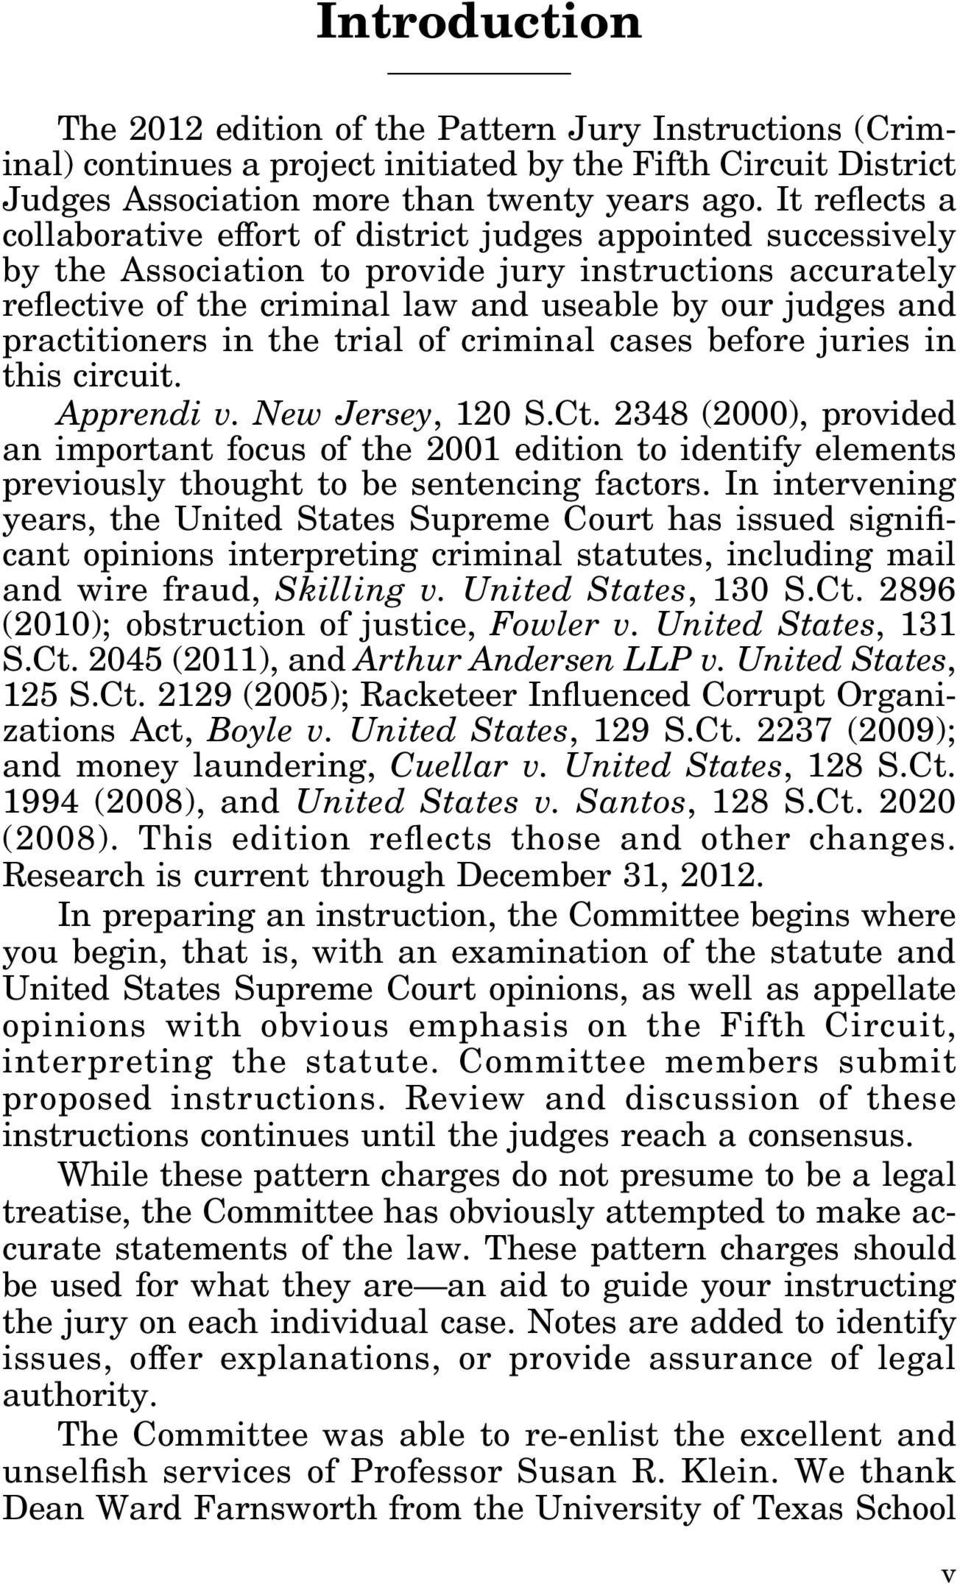 practitioners in the trial of criminal cases before juries in this circuit. Apprendi v. New Jersey, 120 S.Ct.